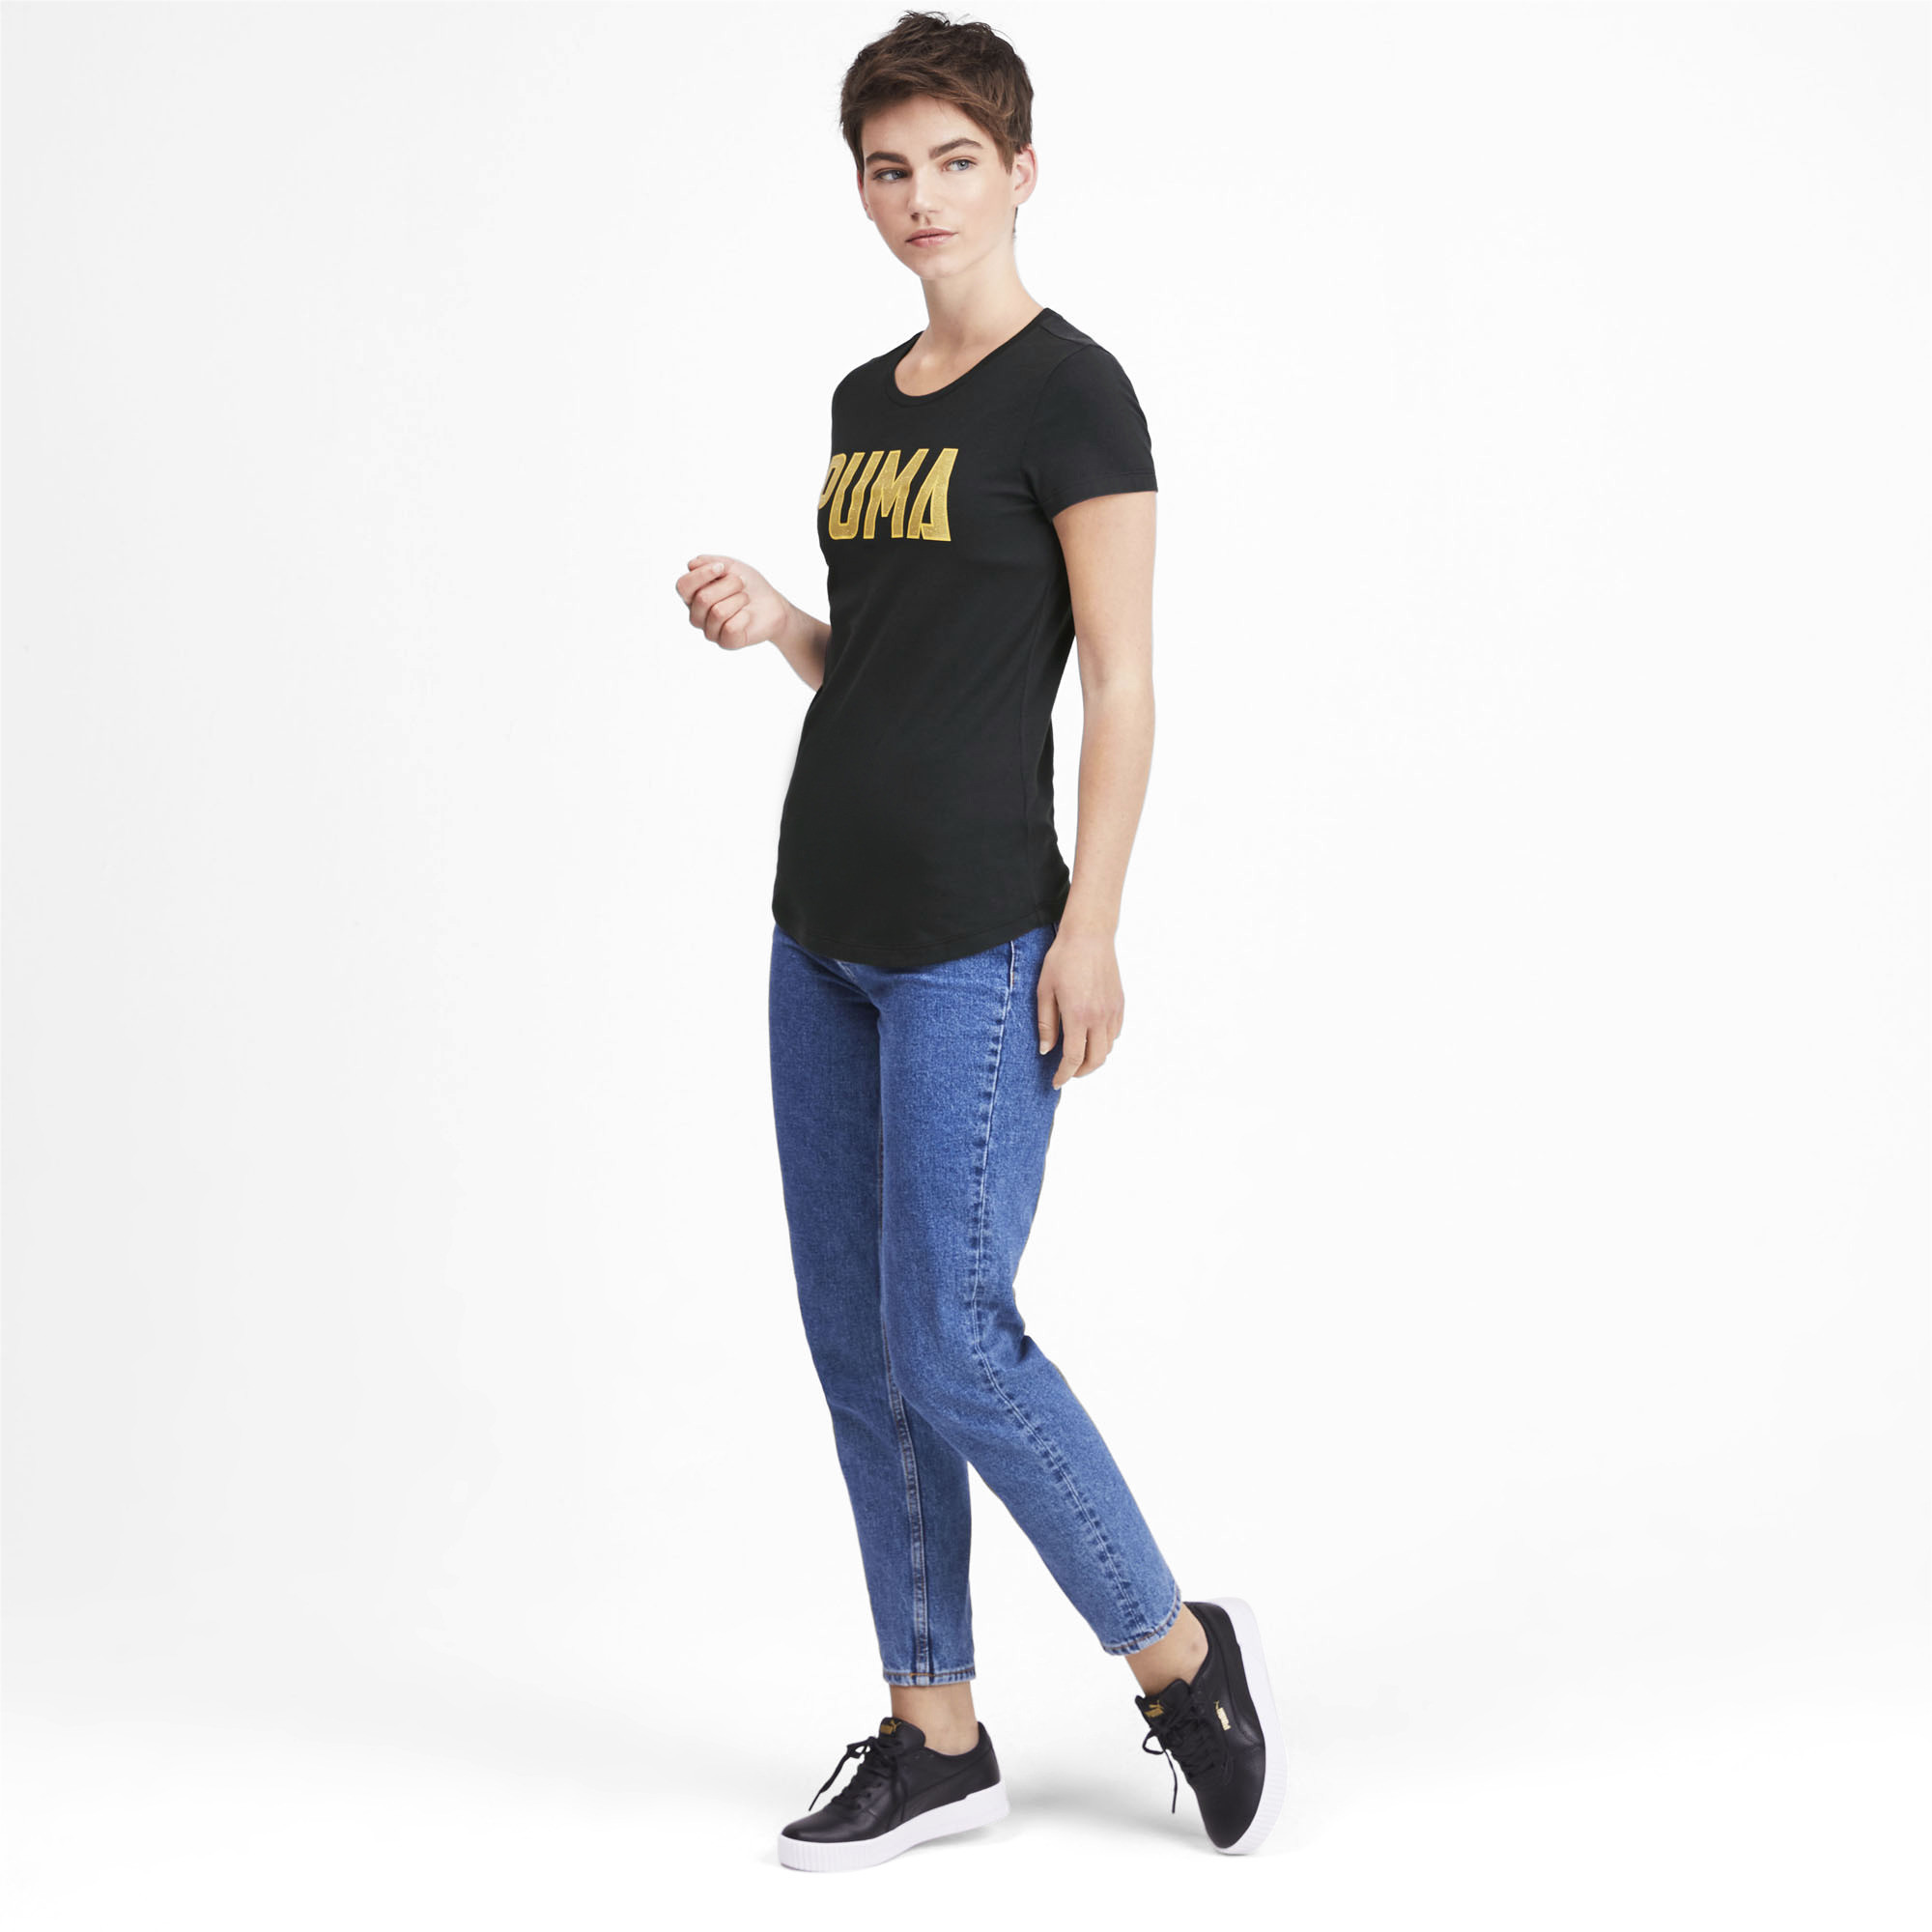 PUMA-Women-039-s-Athletics-Tee thumbnail 23